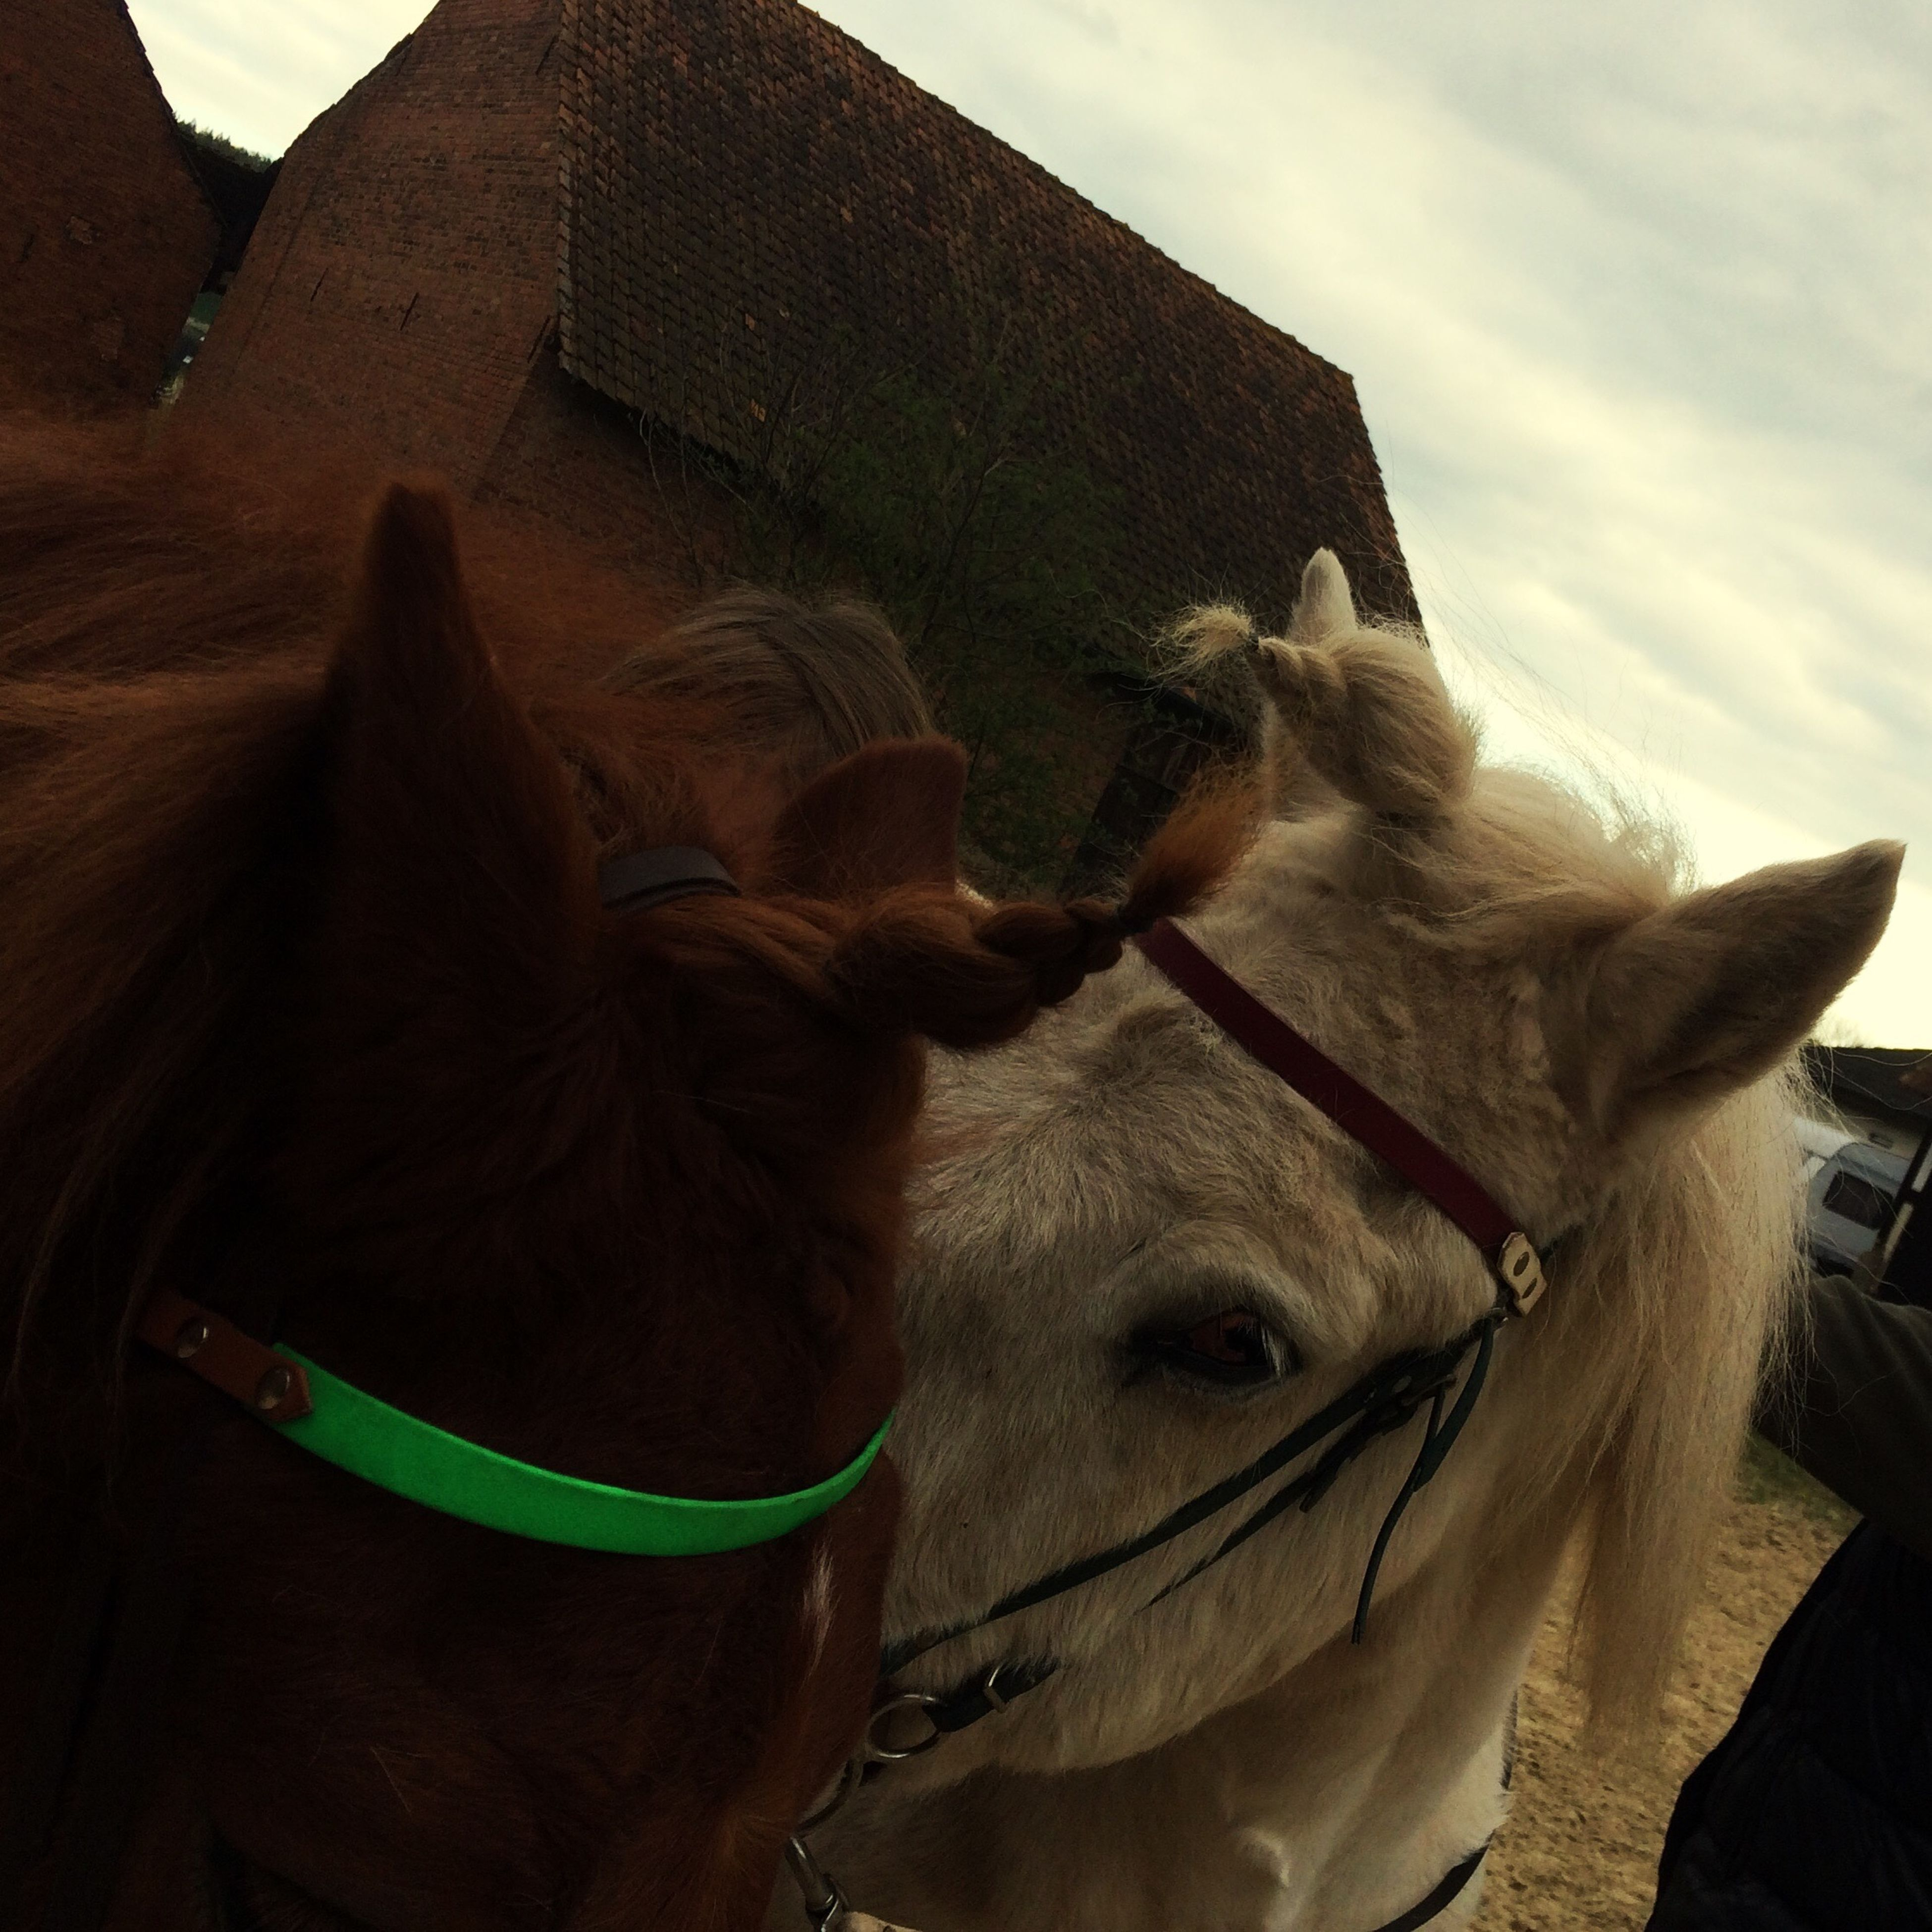 domestic animals, horse, mammal, animal themes, livestock, sky, one animal, working animal, outdoors, bridle, day, close-up, no people, nature